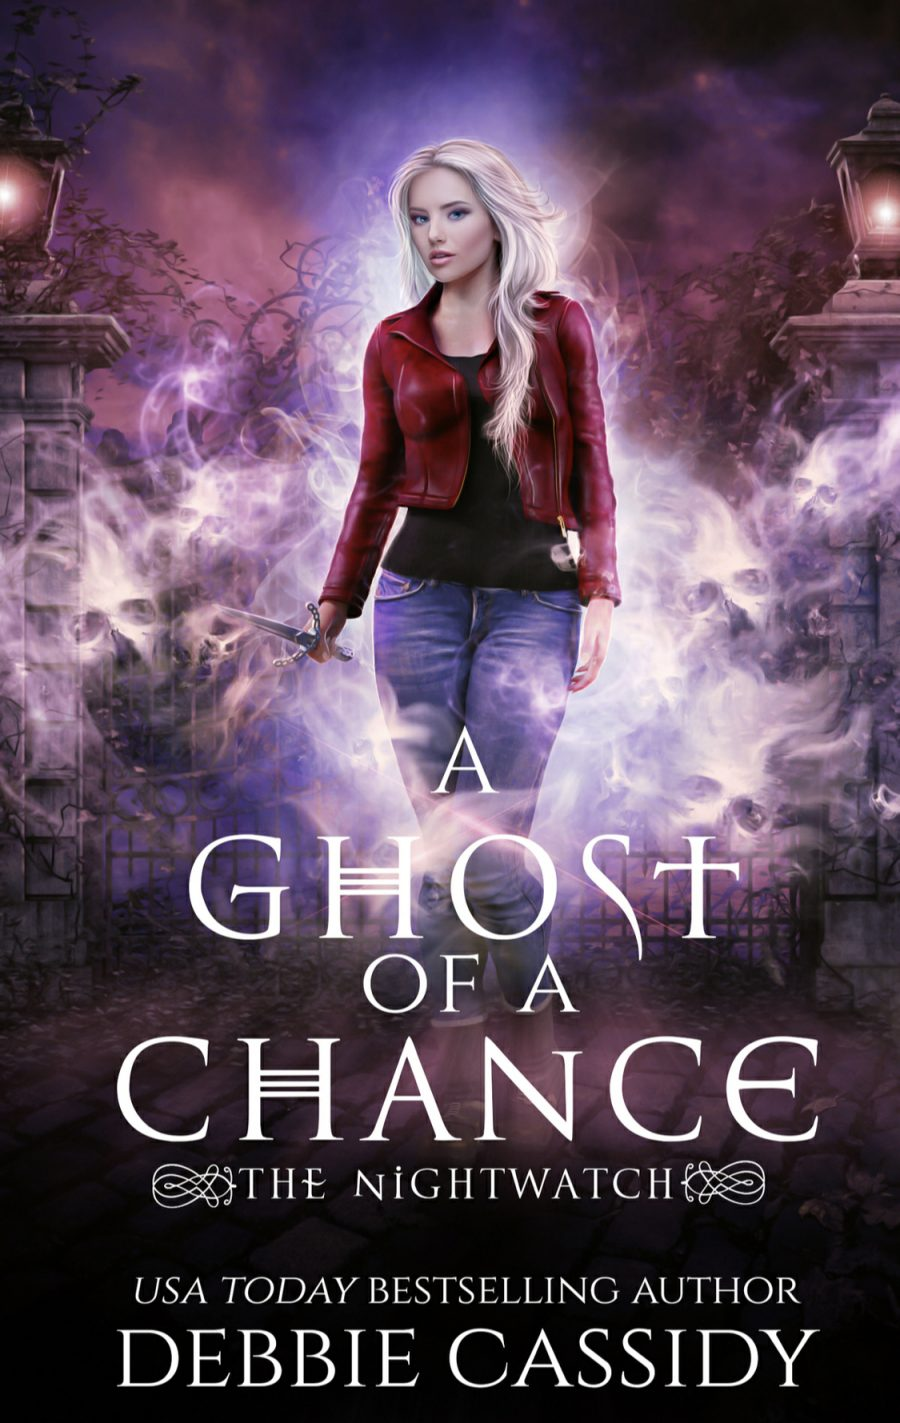 A Ghost of a Chance (Nightwatch - Book 1) by Debbie Cassidy - A Book Review #BookReview #UrbanFantasy #UF #4Stars #KindleUnlimited #KU